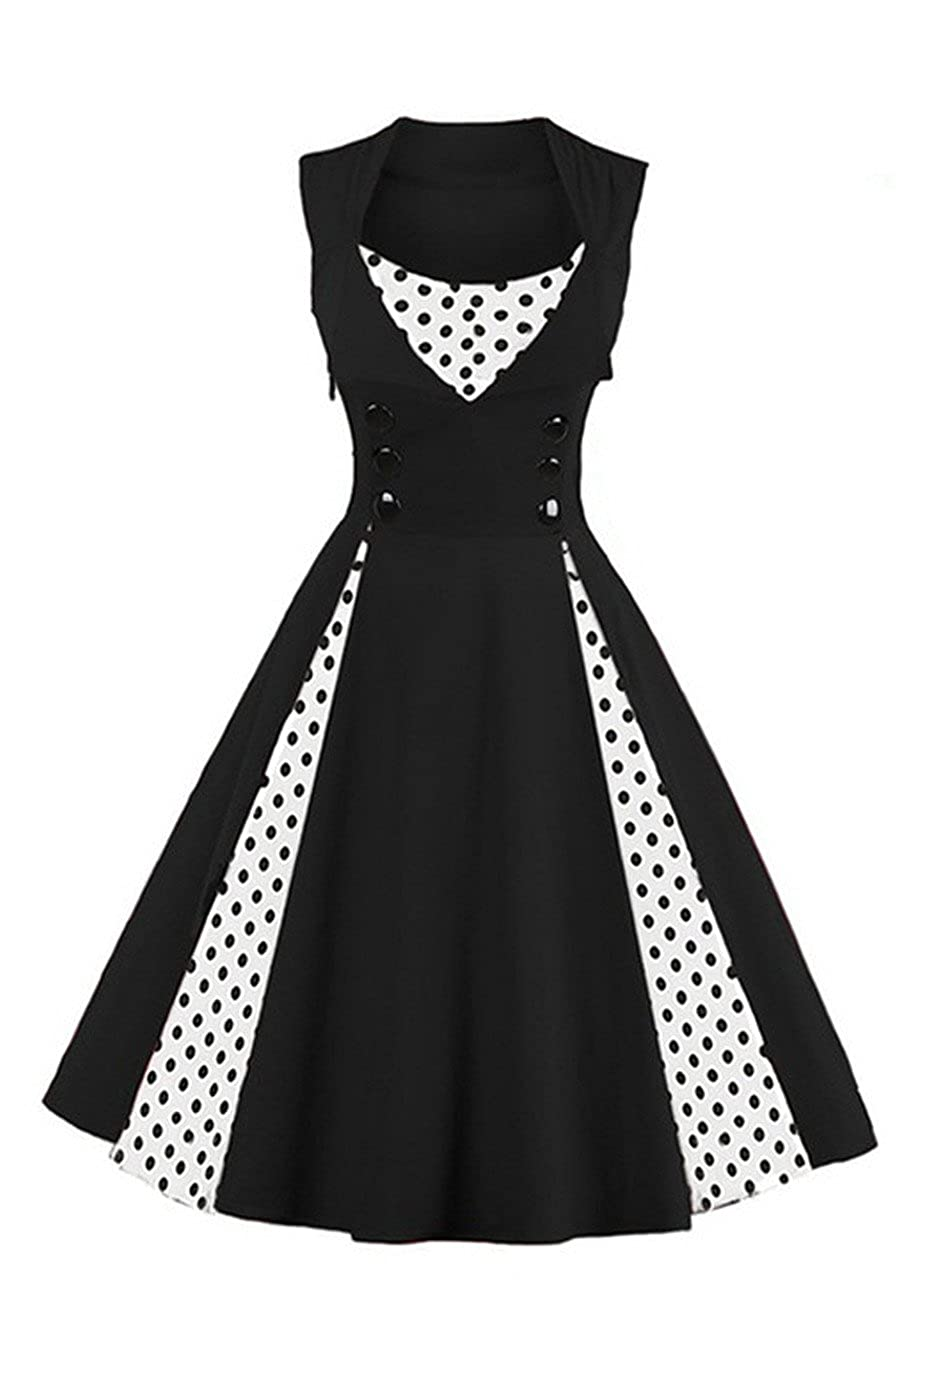 TALLA XL. VERNASSA 50s Vestidos Vintage,Mujeres 1950s Vintage A-Line Rockabilly Clásico Verano Dress for Evening Party Cocktail, Multicolor, S-Plus Size 4XL 1357-puntos Negros